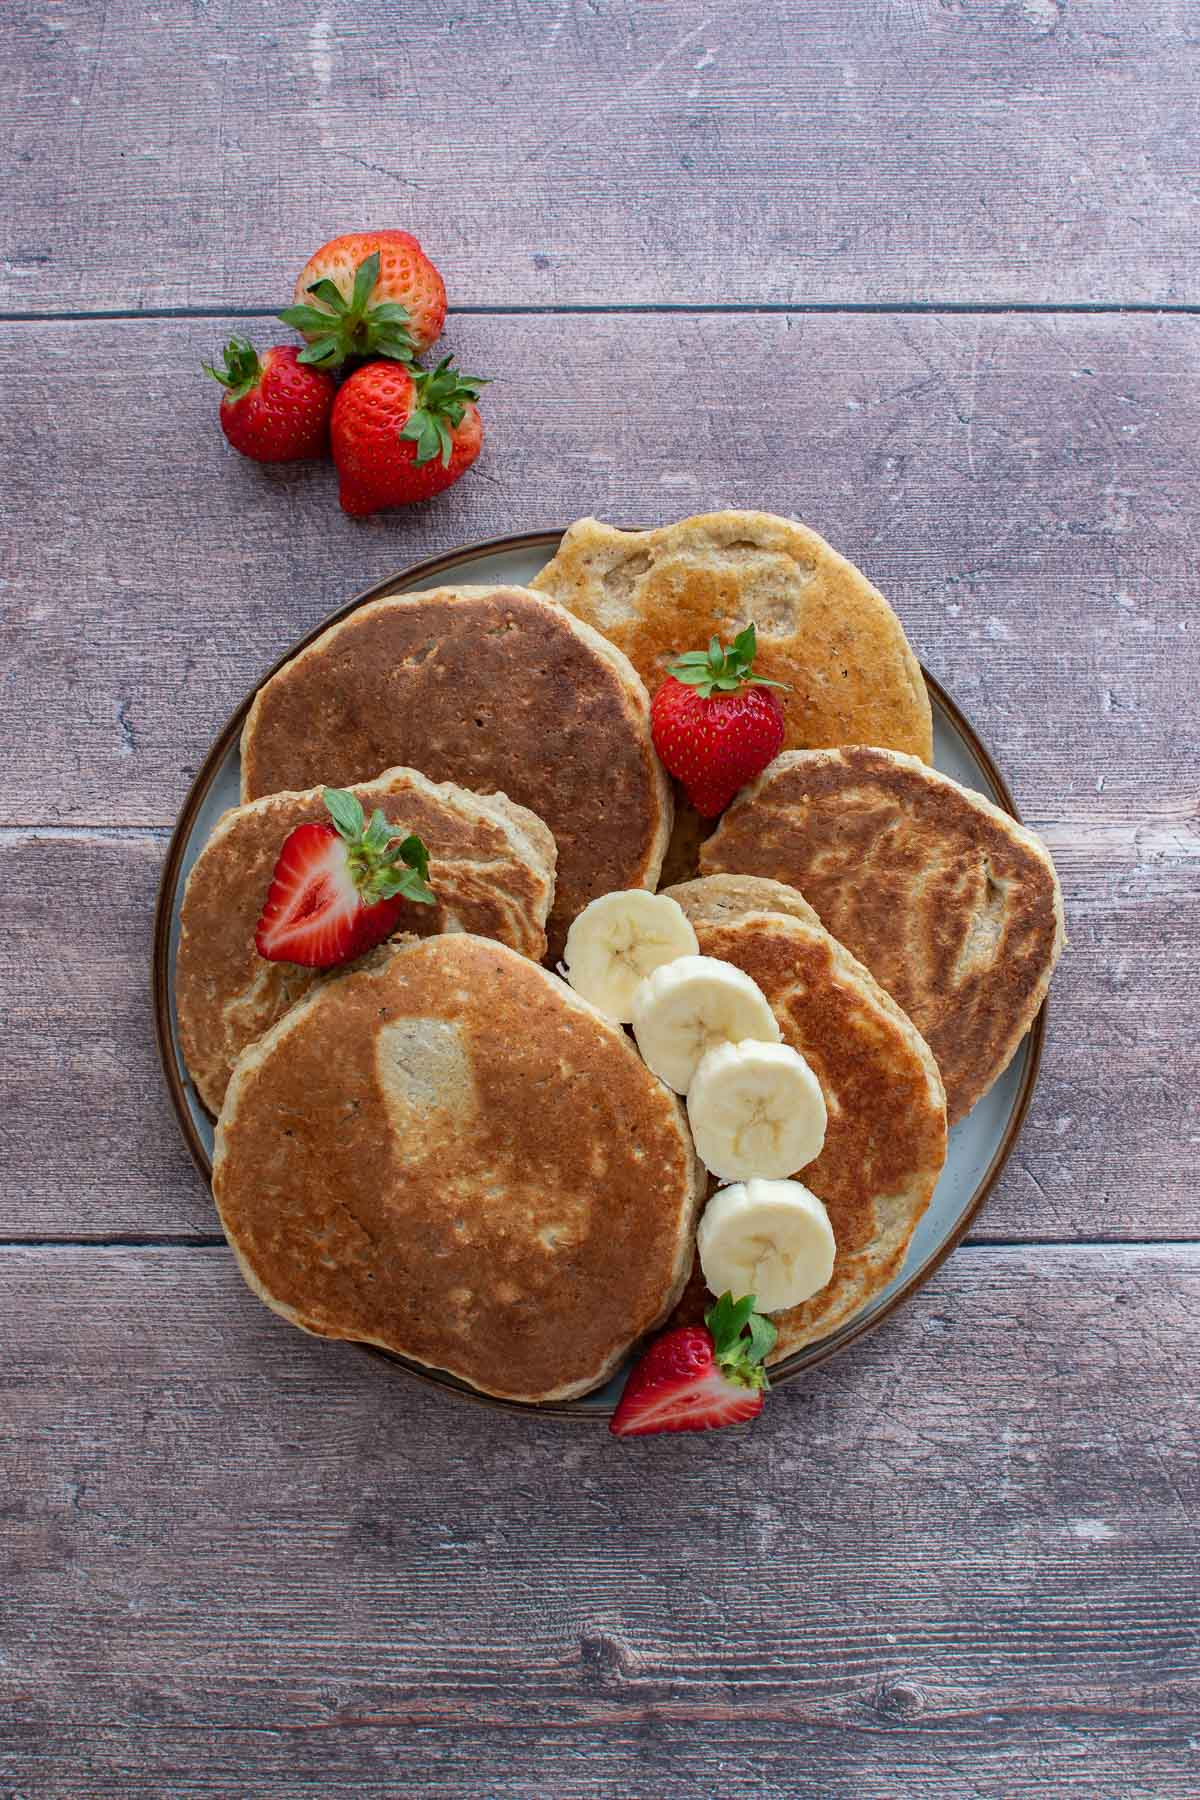 A stack of banana protein pancakes, with strawberries and sliced banana on top.